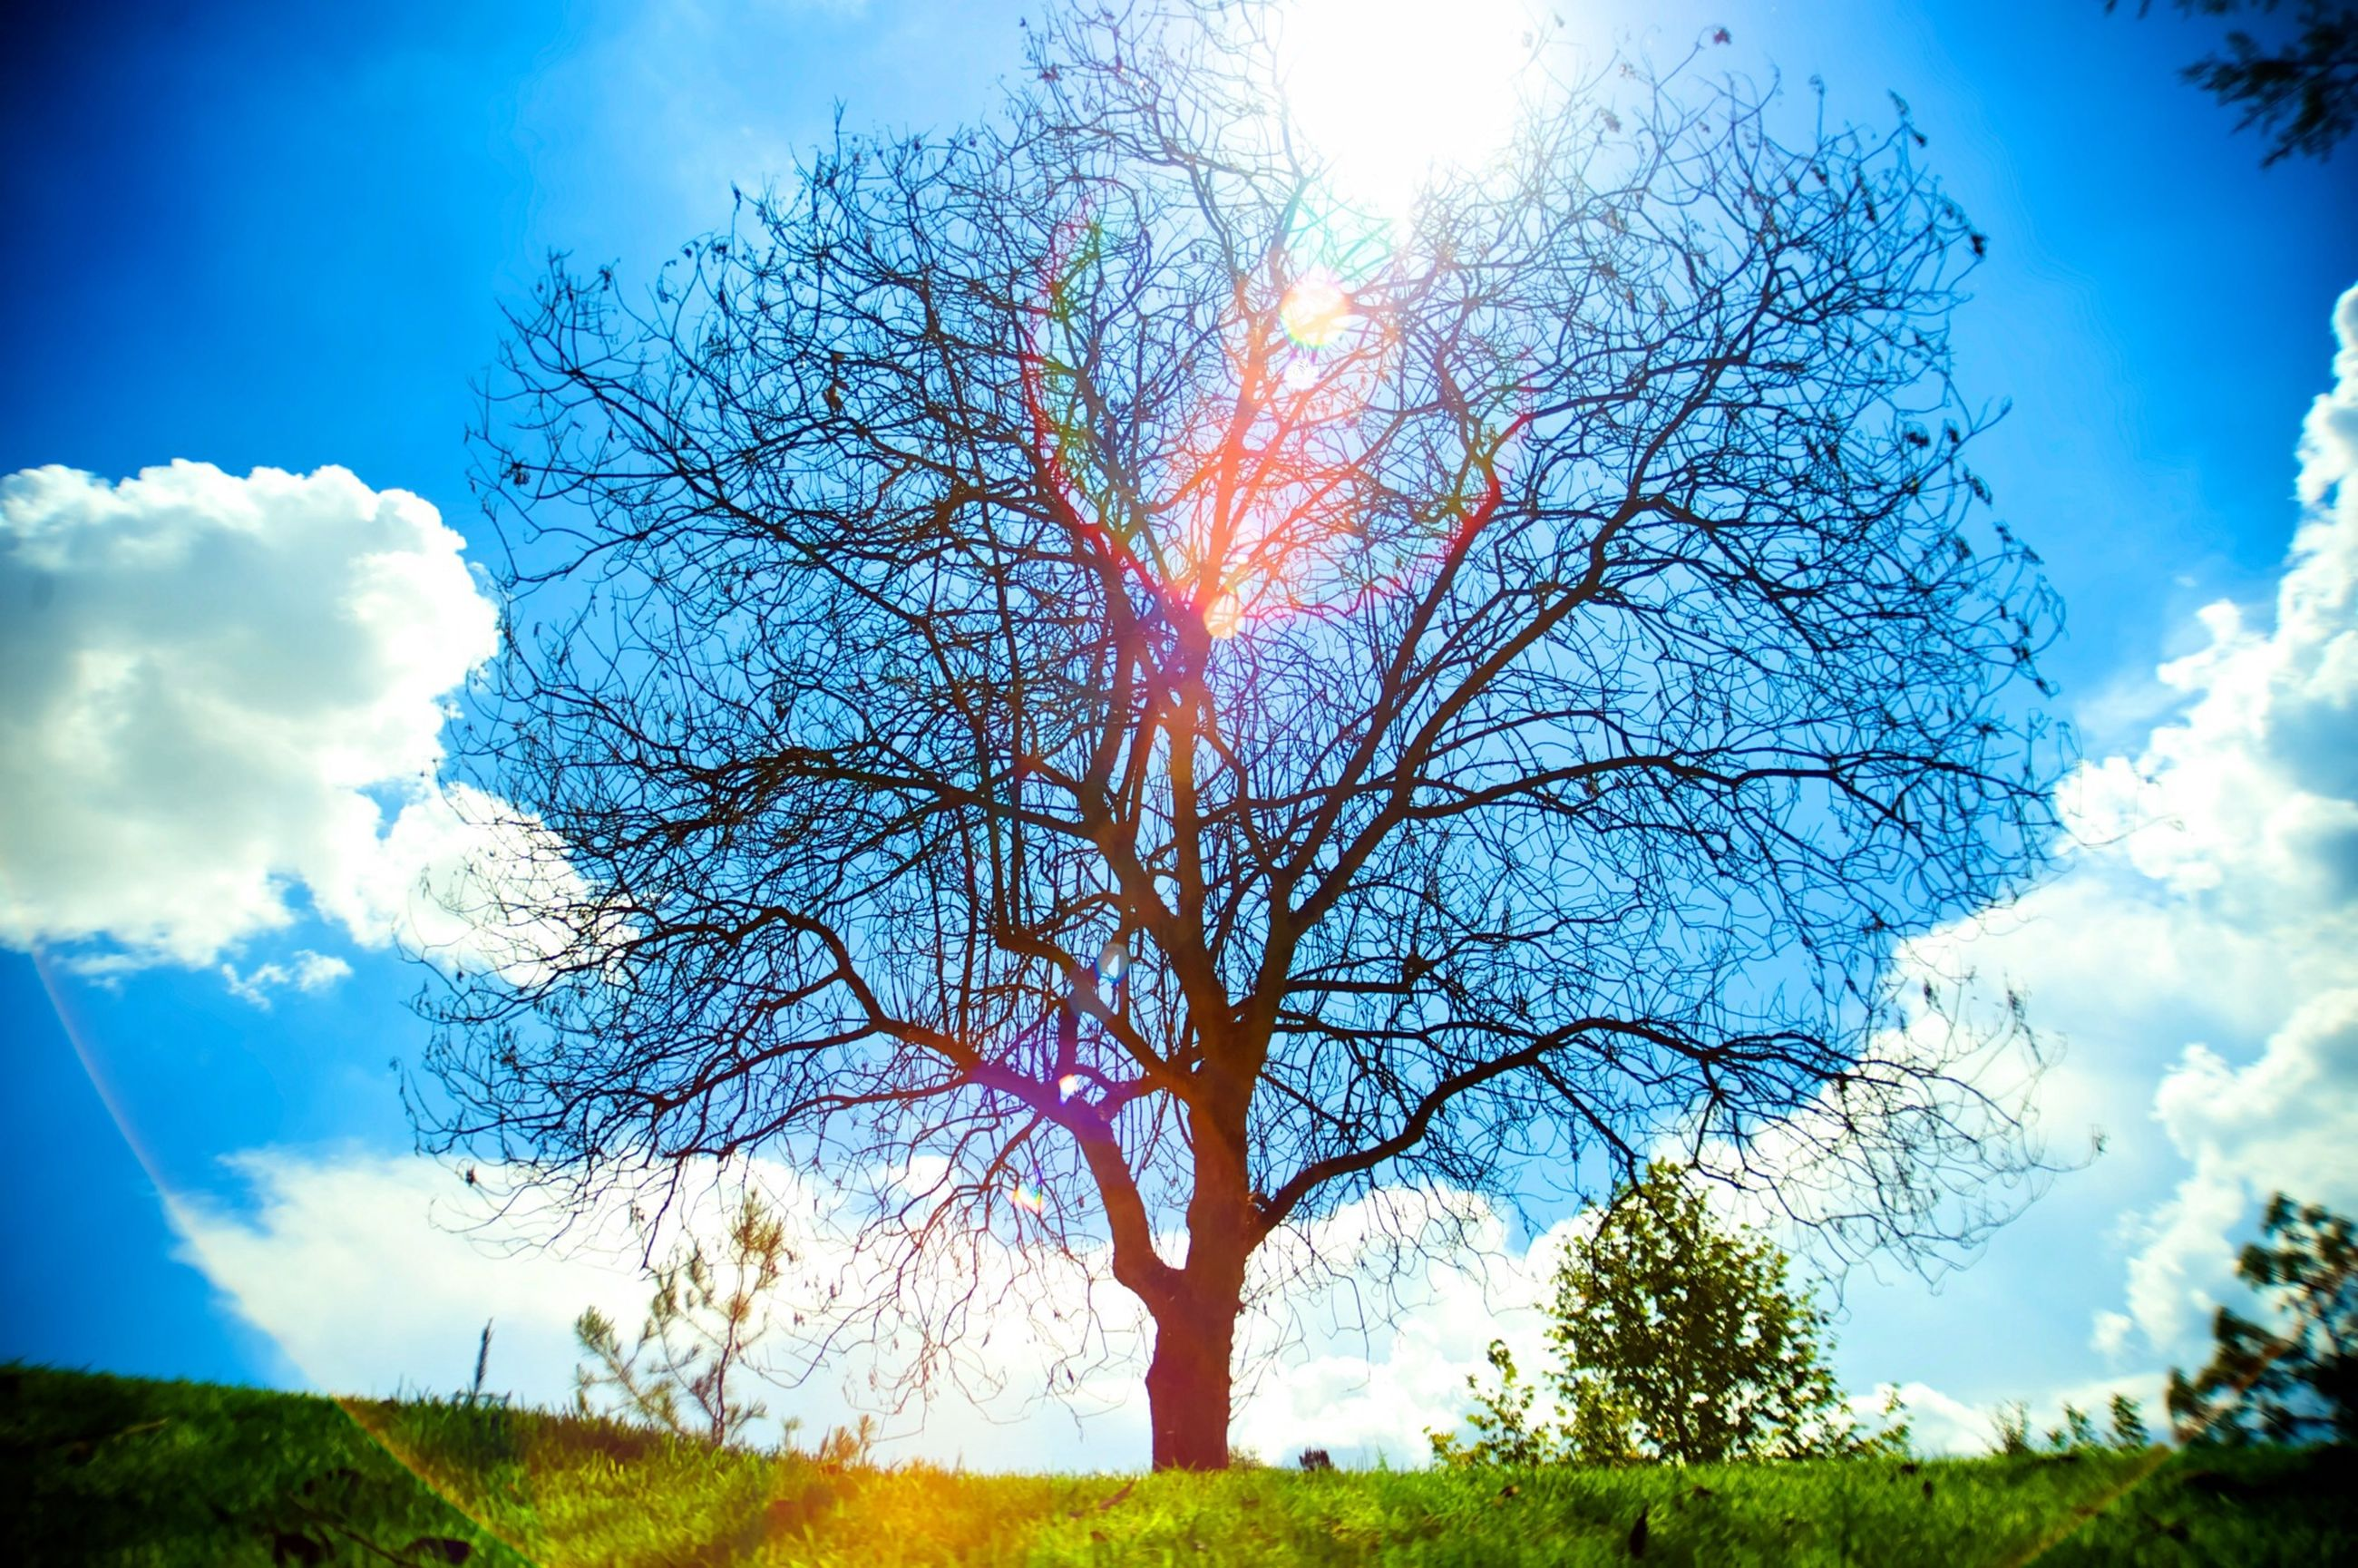 tree, sky, tranquility, tranquil scene, beauty in nature, scenics, nature, cloud - sky, sunlight, bare tree, blue, cloud, sun, sunbeam, landscape, low angle view, branch, tree trunk, growth, field